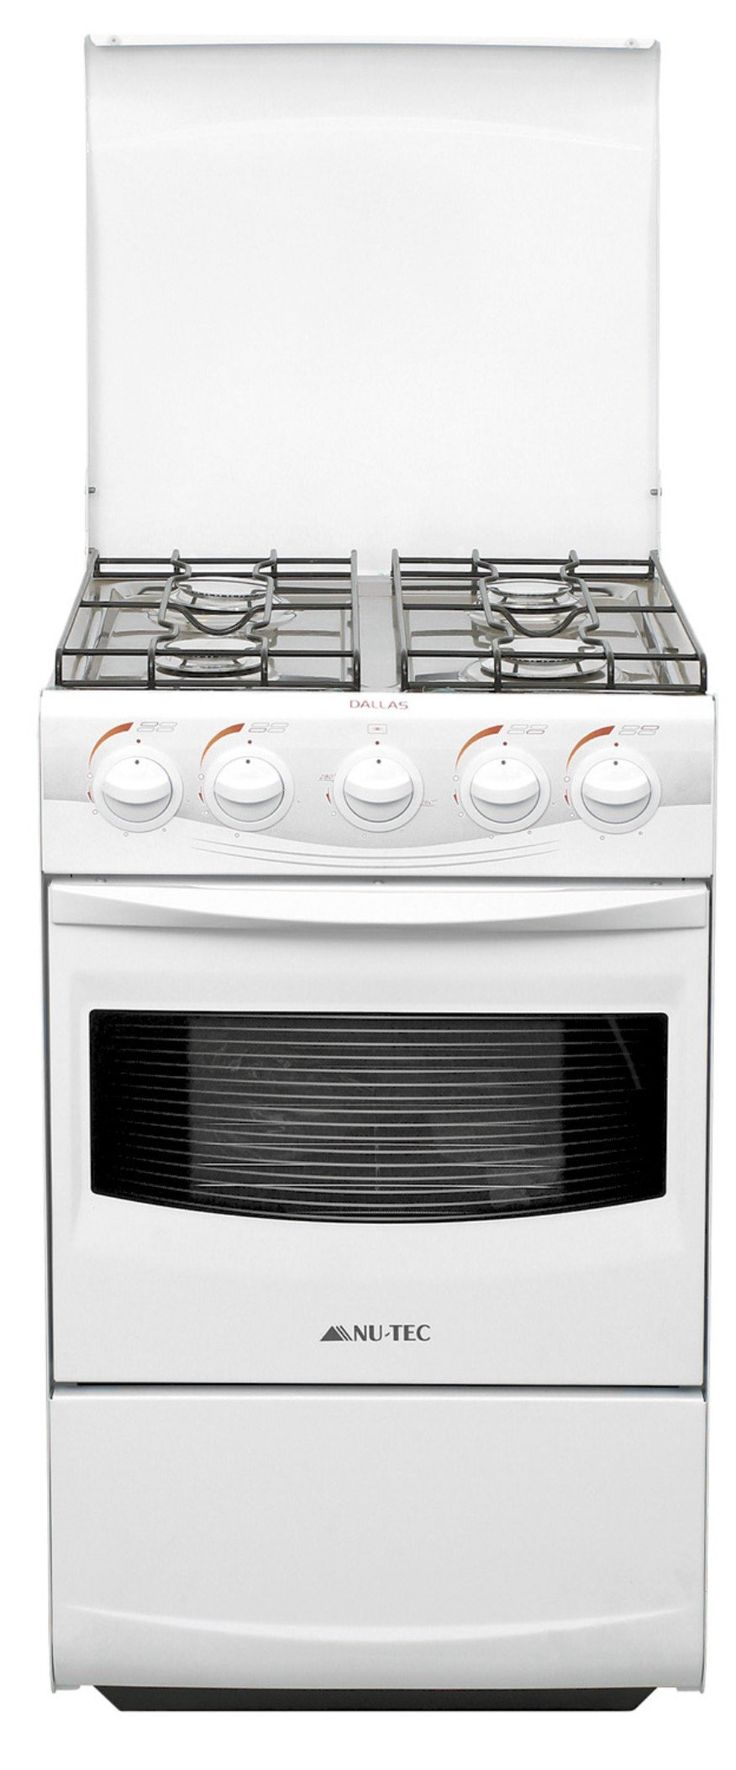 Cookers & Ovens http://www.aplusappliancerepairs.co.uk